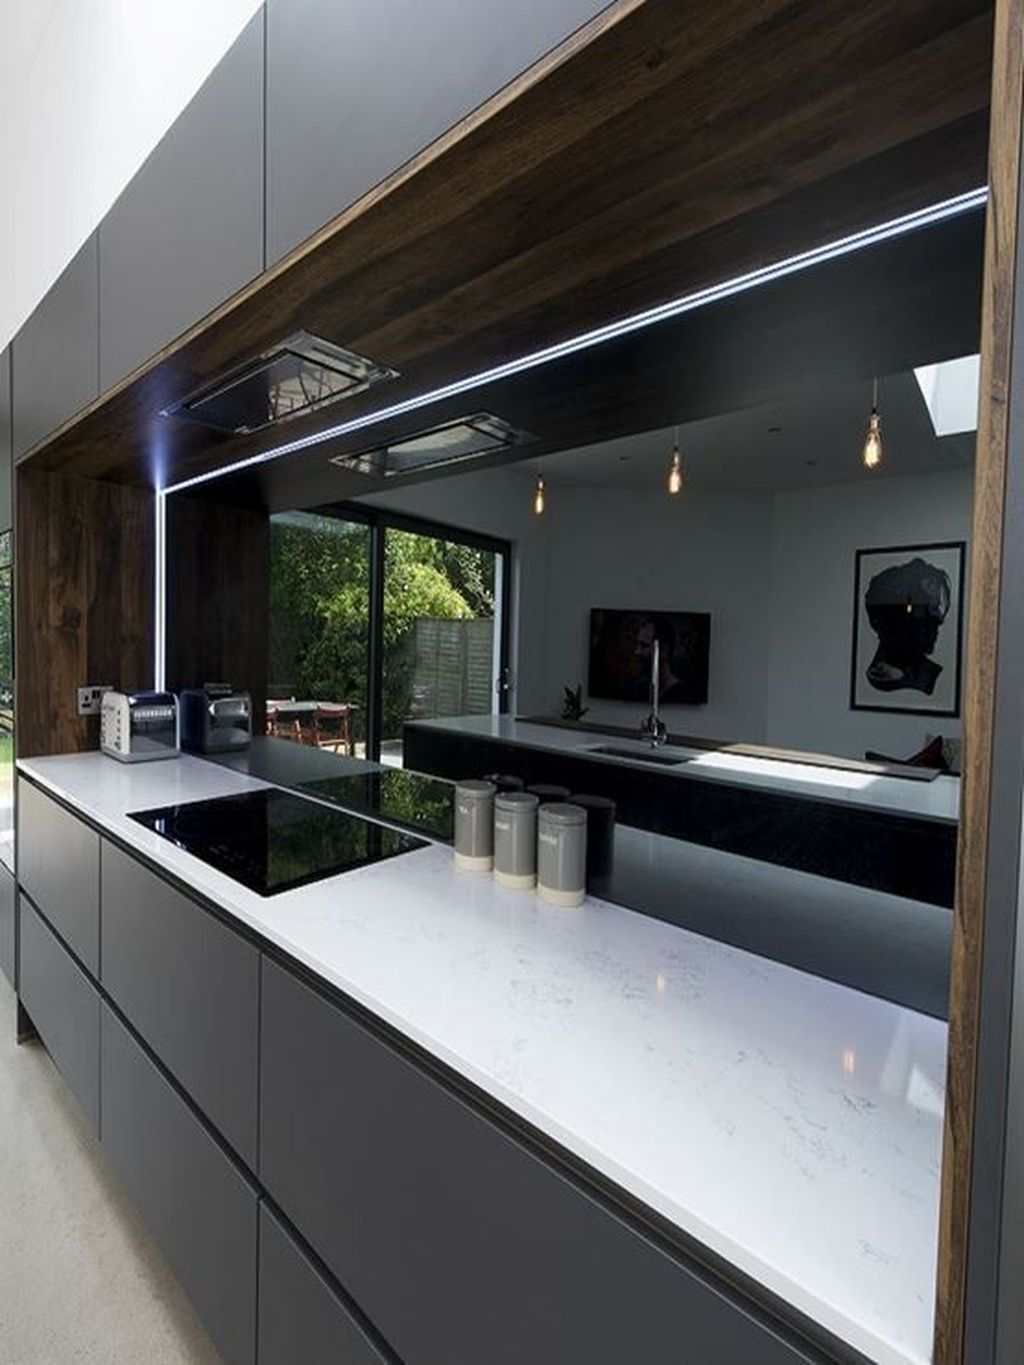 18 The Best Kitchen Mirror Ideas For Remodeling Your Kitchen en